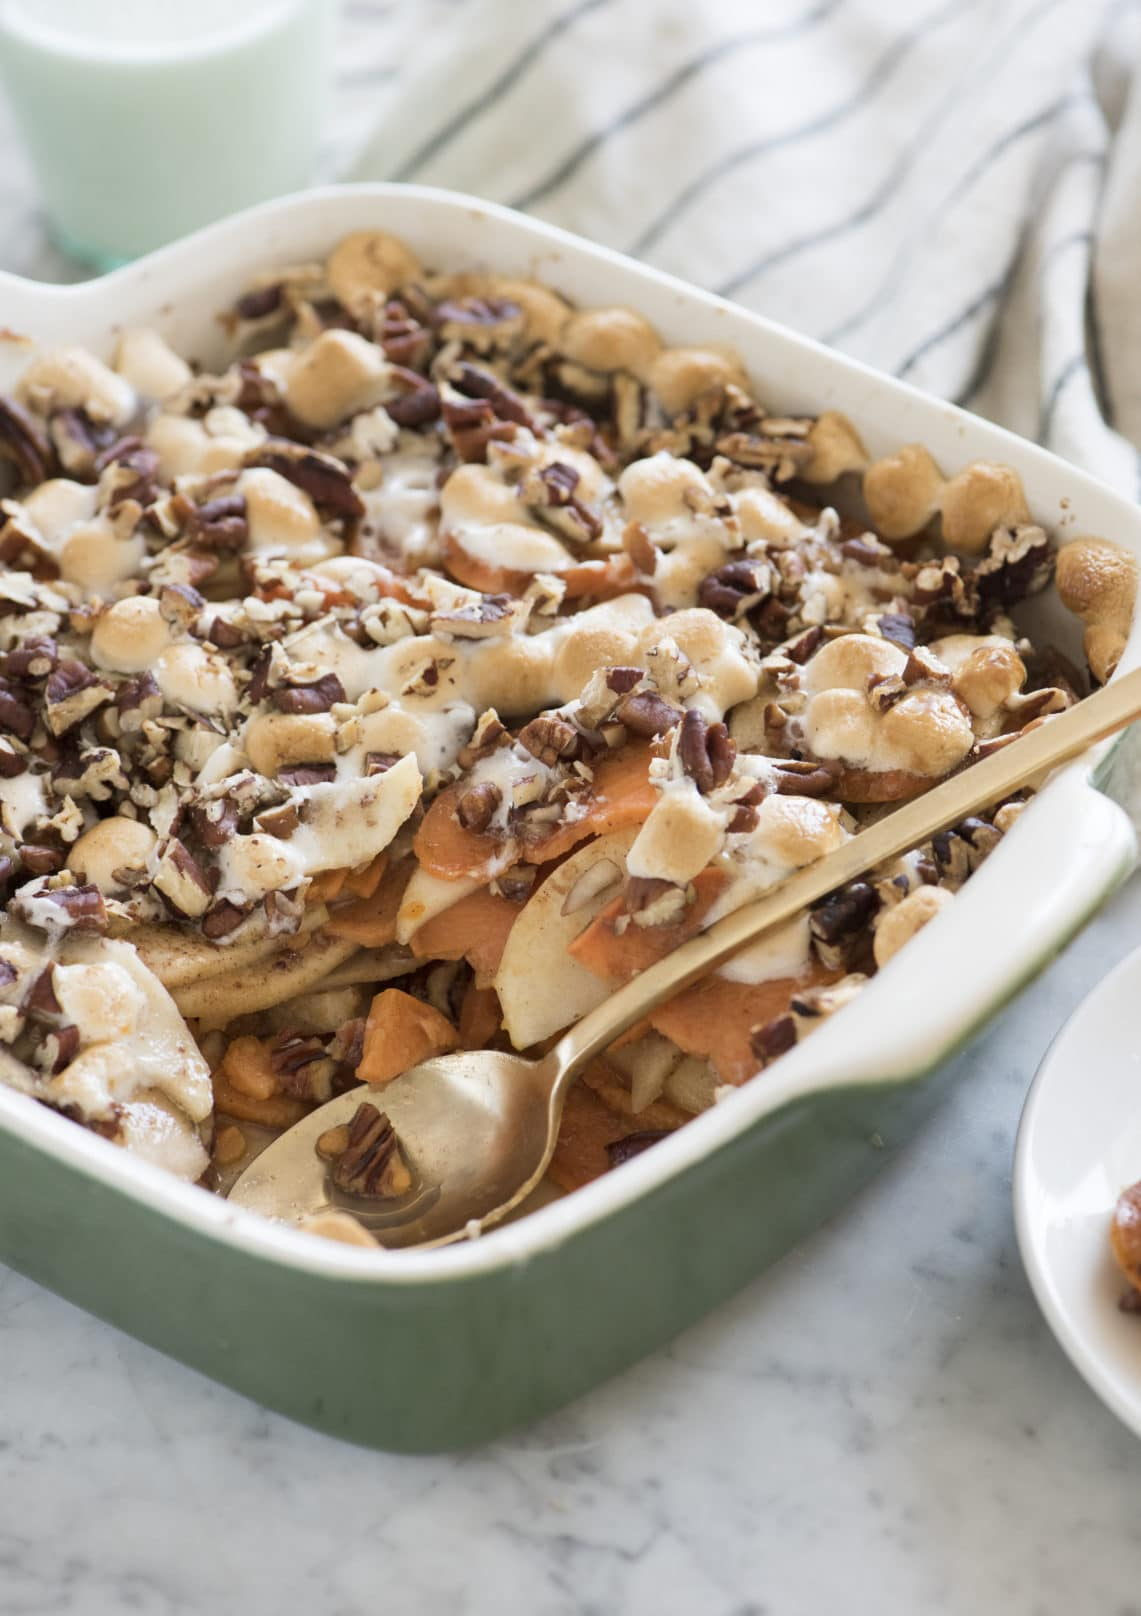 sweet potato casserole in a green dish with a gold spoon scooping out filling